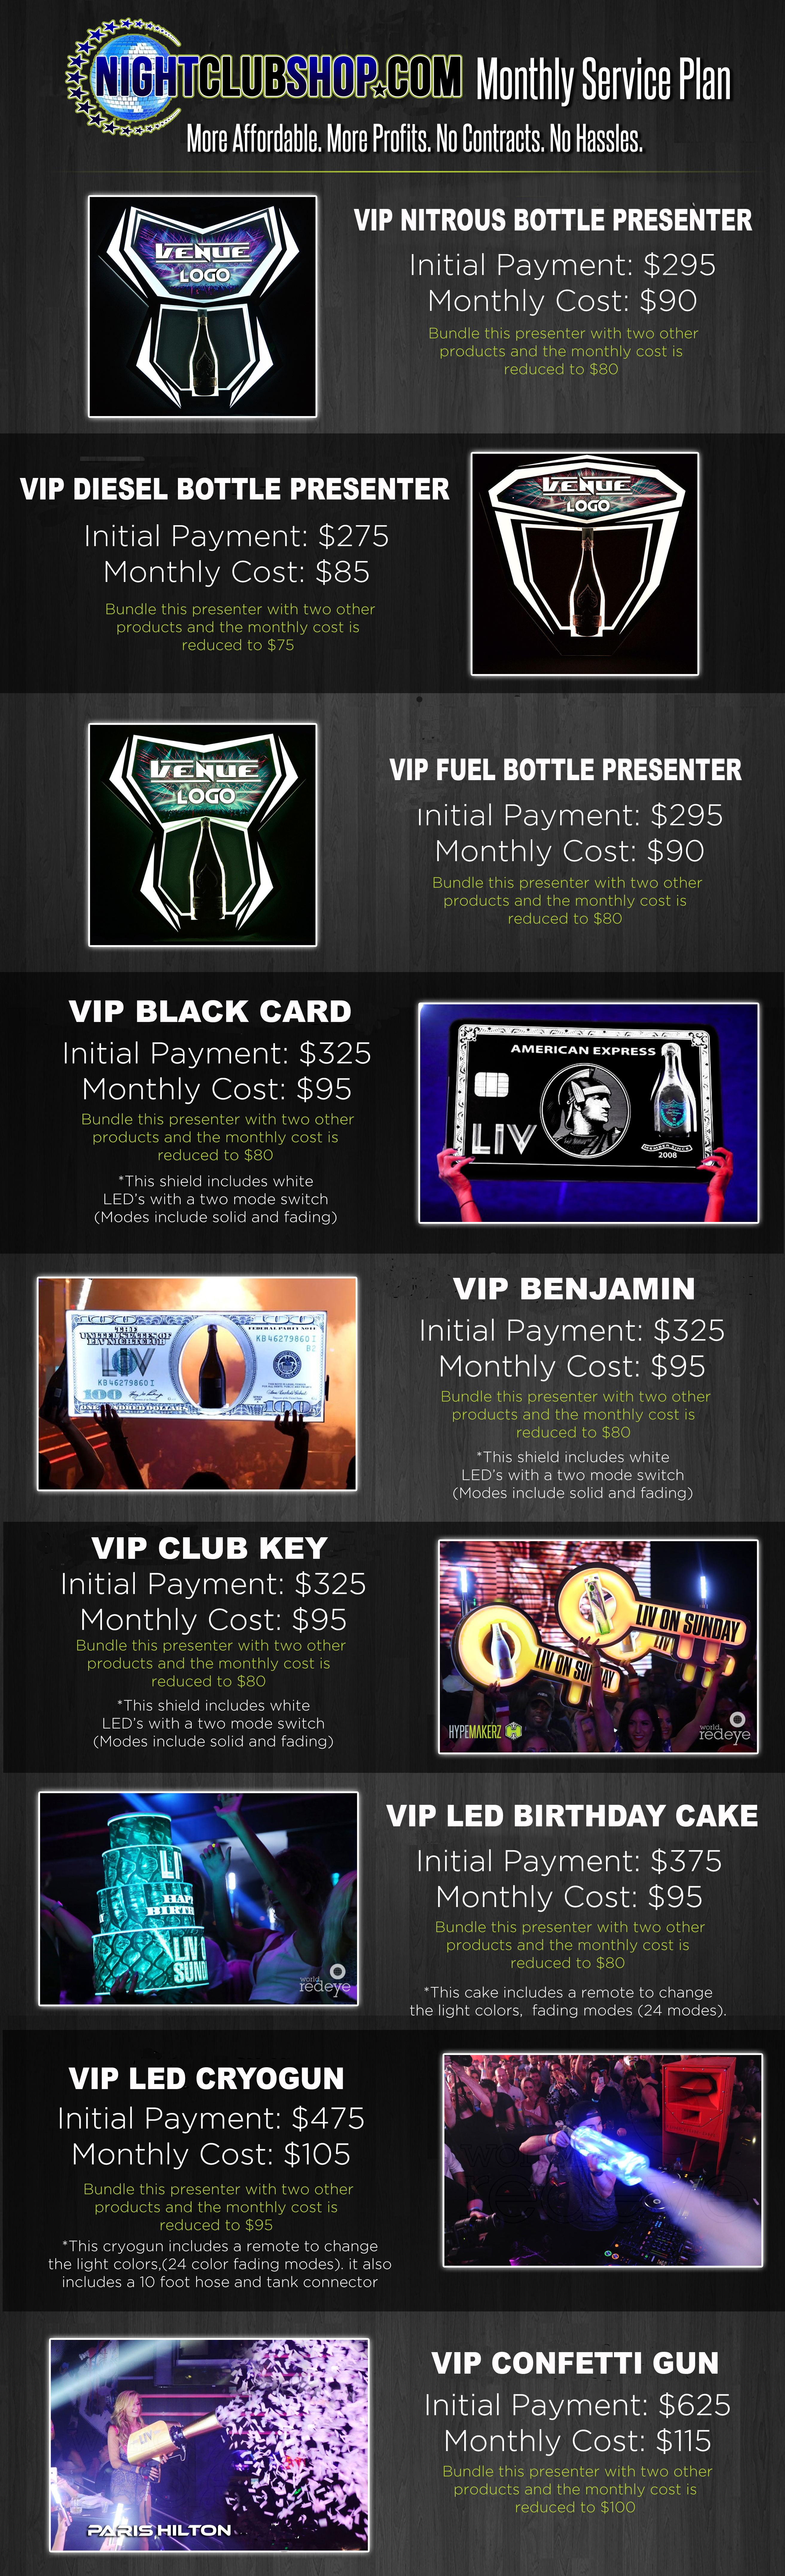 2.nightclubshop-monthly-service-plan.jpg